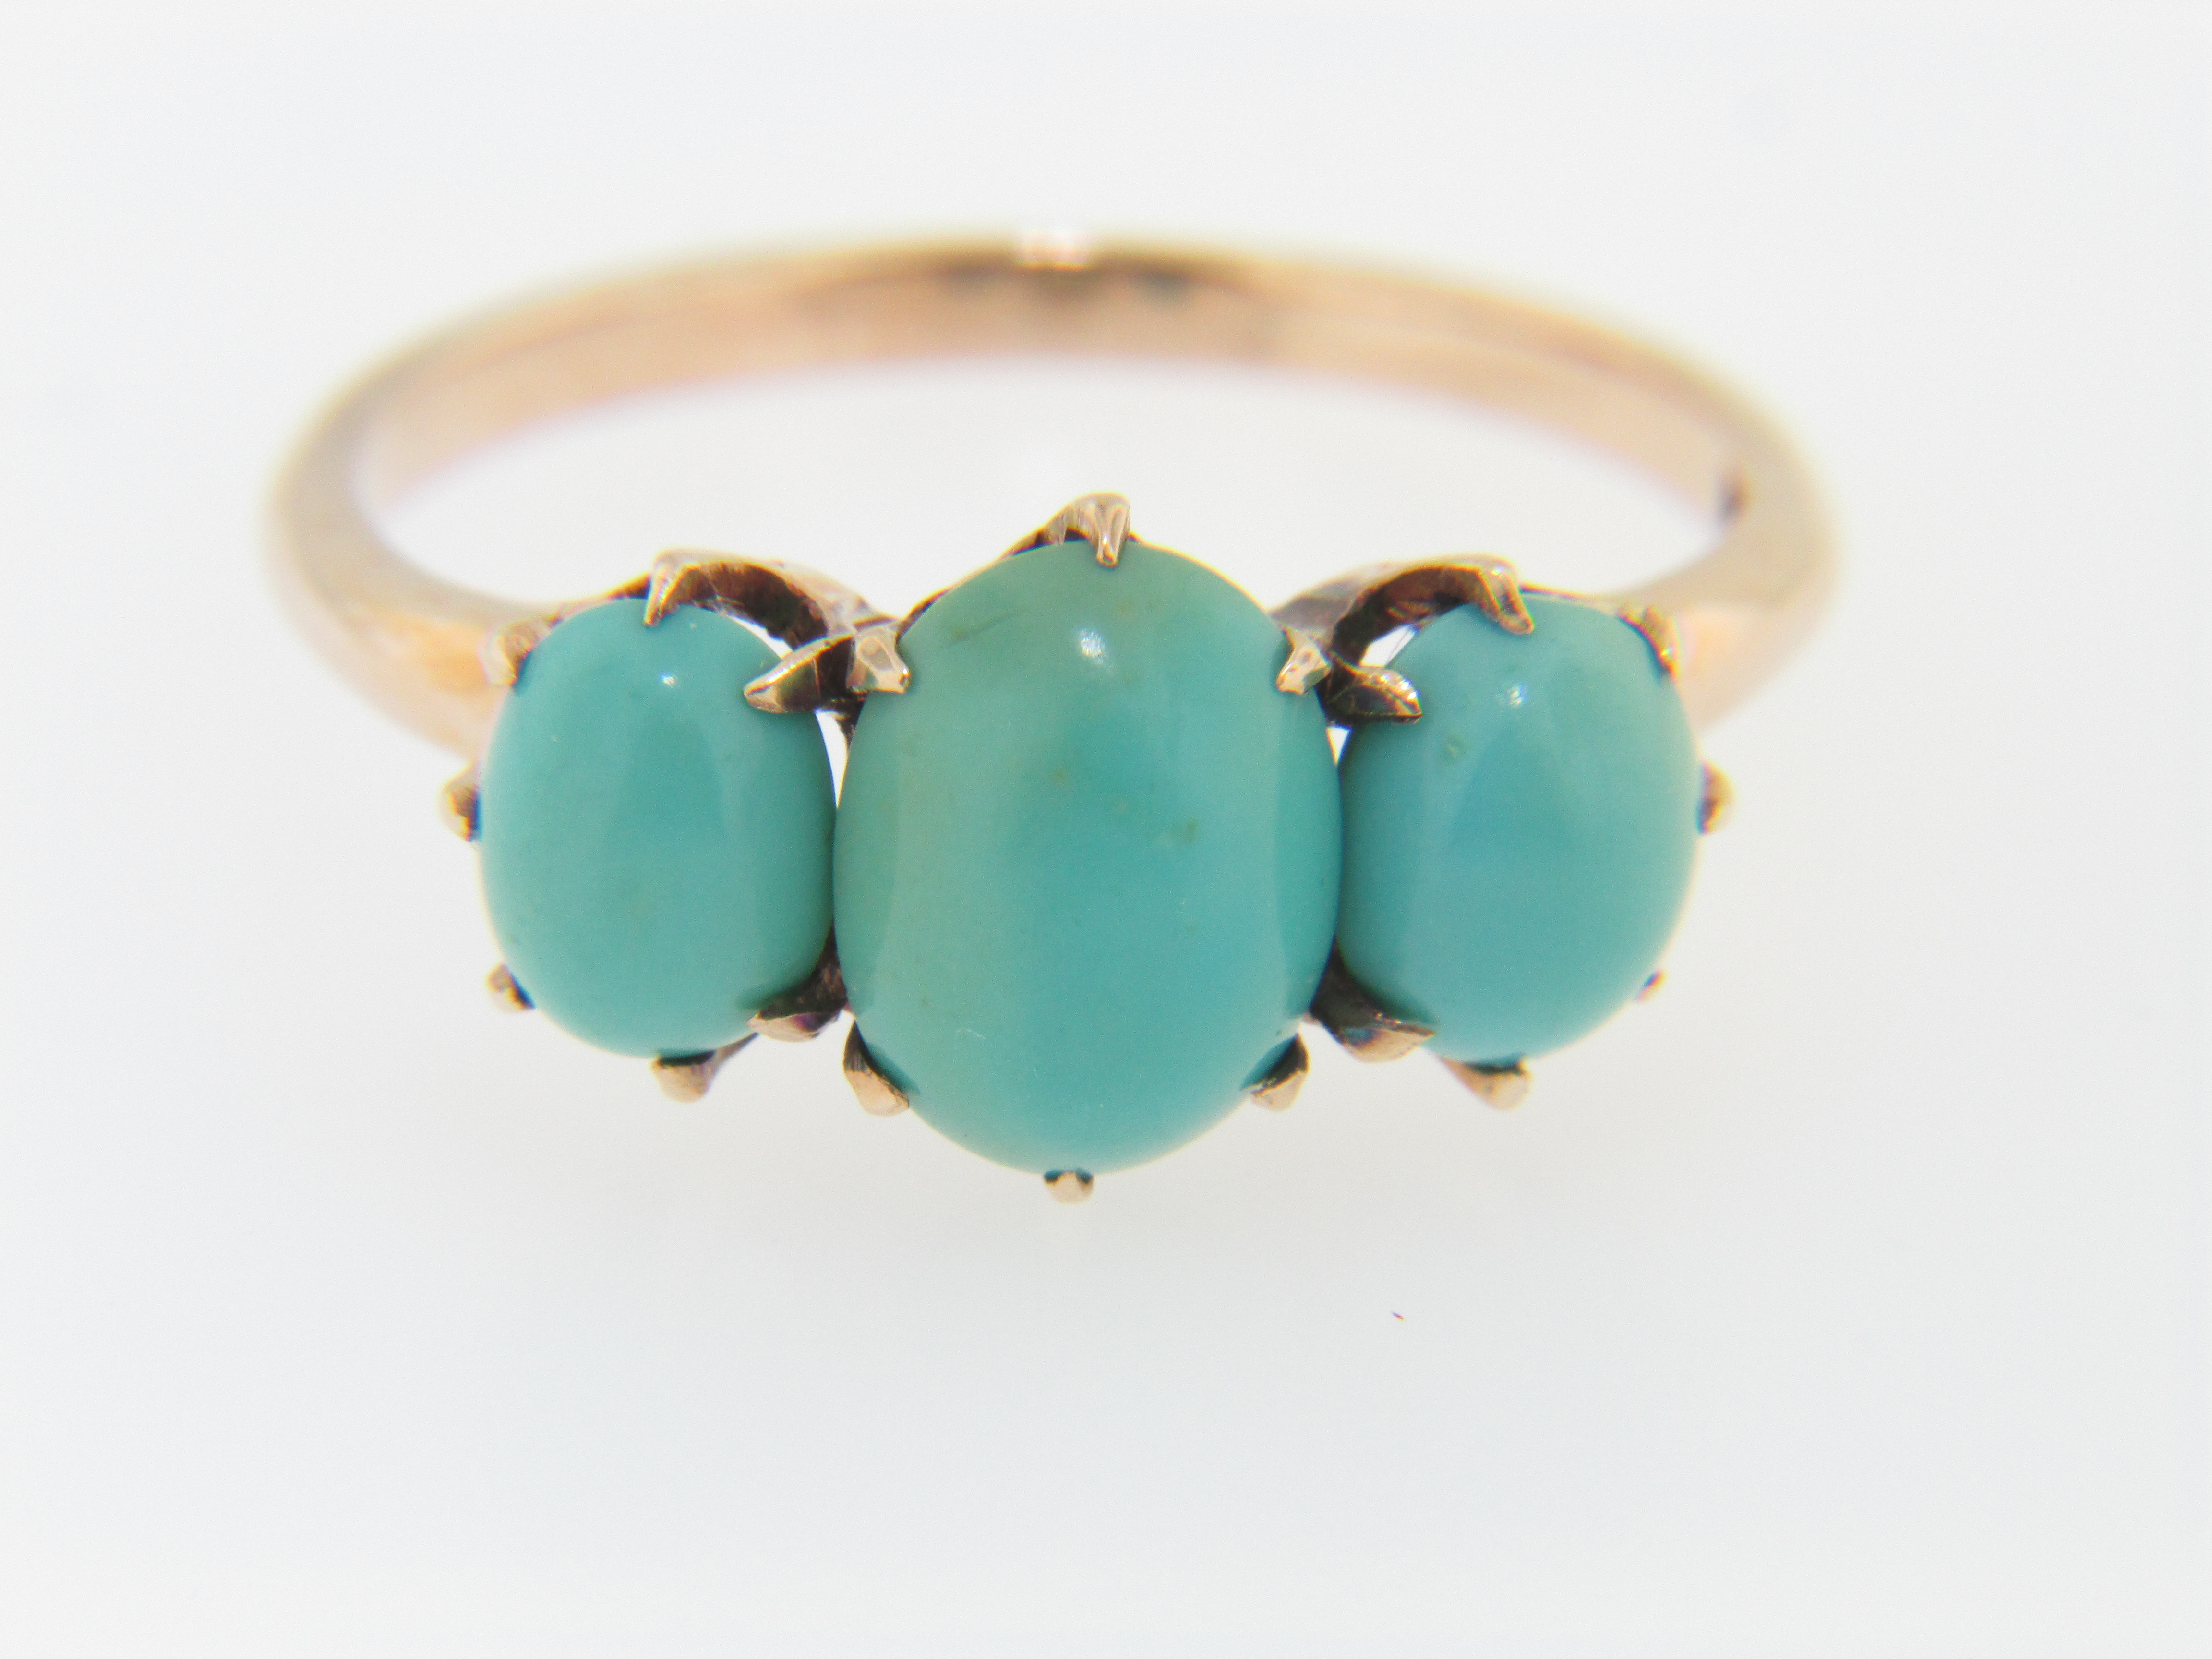 Vintage Antique 1880s Three Oval Turquoise Ring in 14k Rose Gold